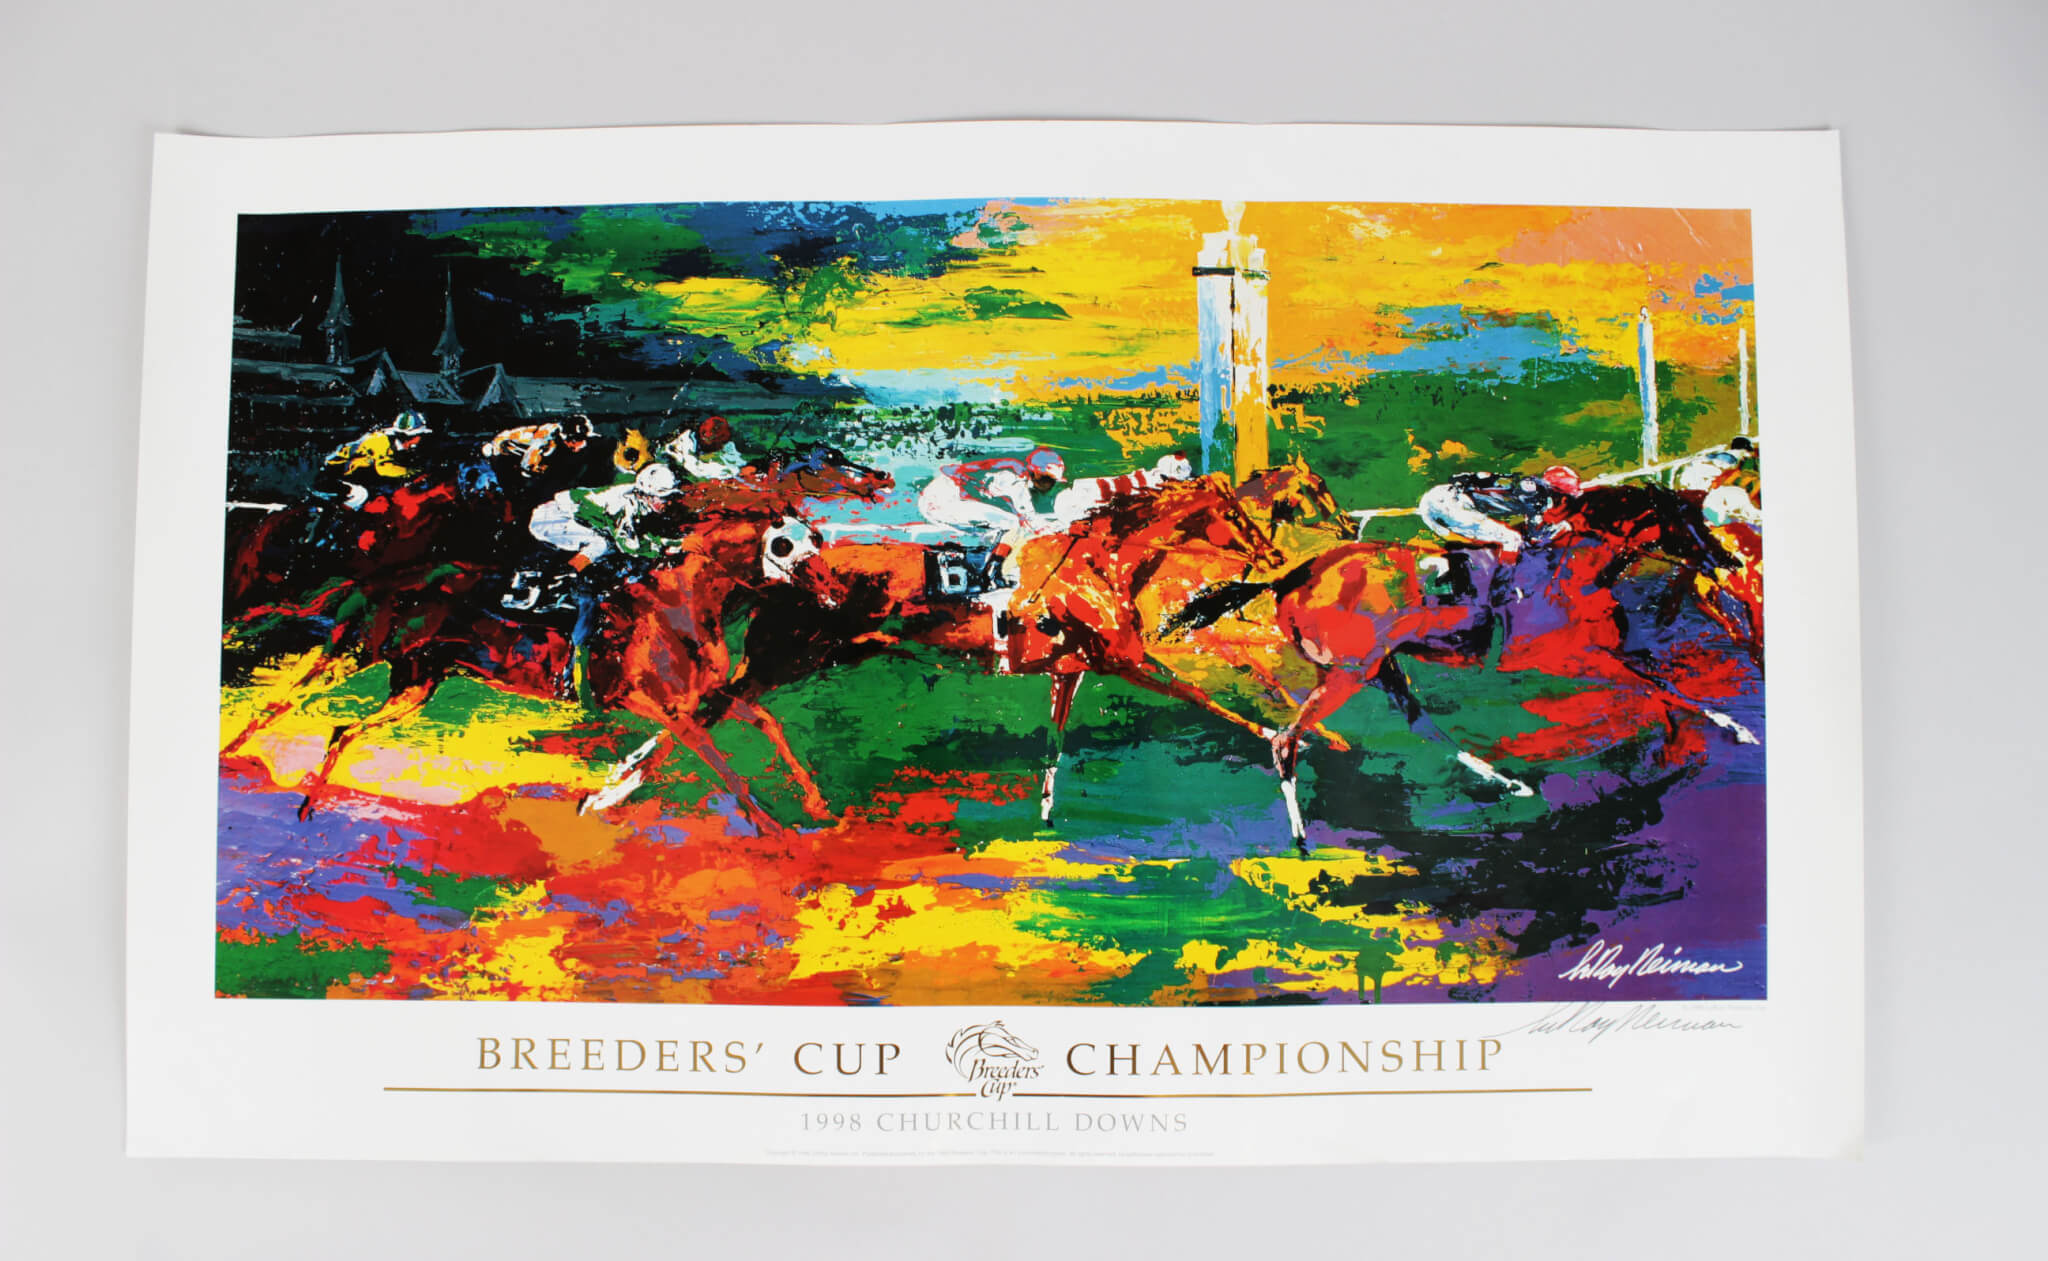 1998 Churchhill Downs Breeders' Cup Championship Signed LeRoy Neiman Poster (JSA)